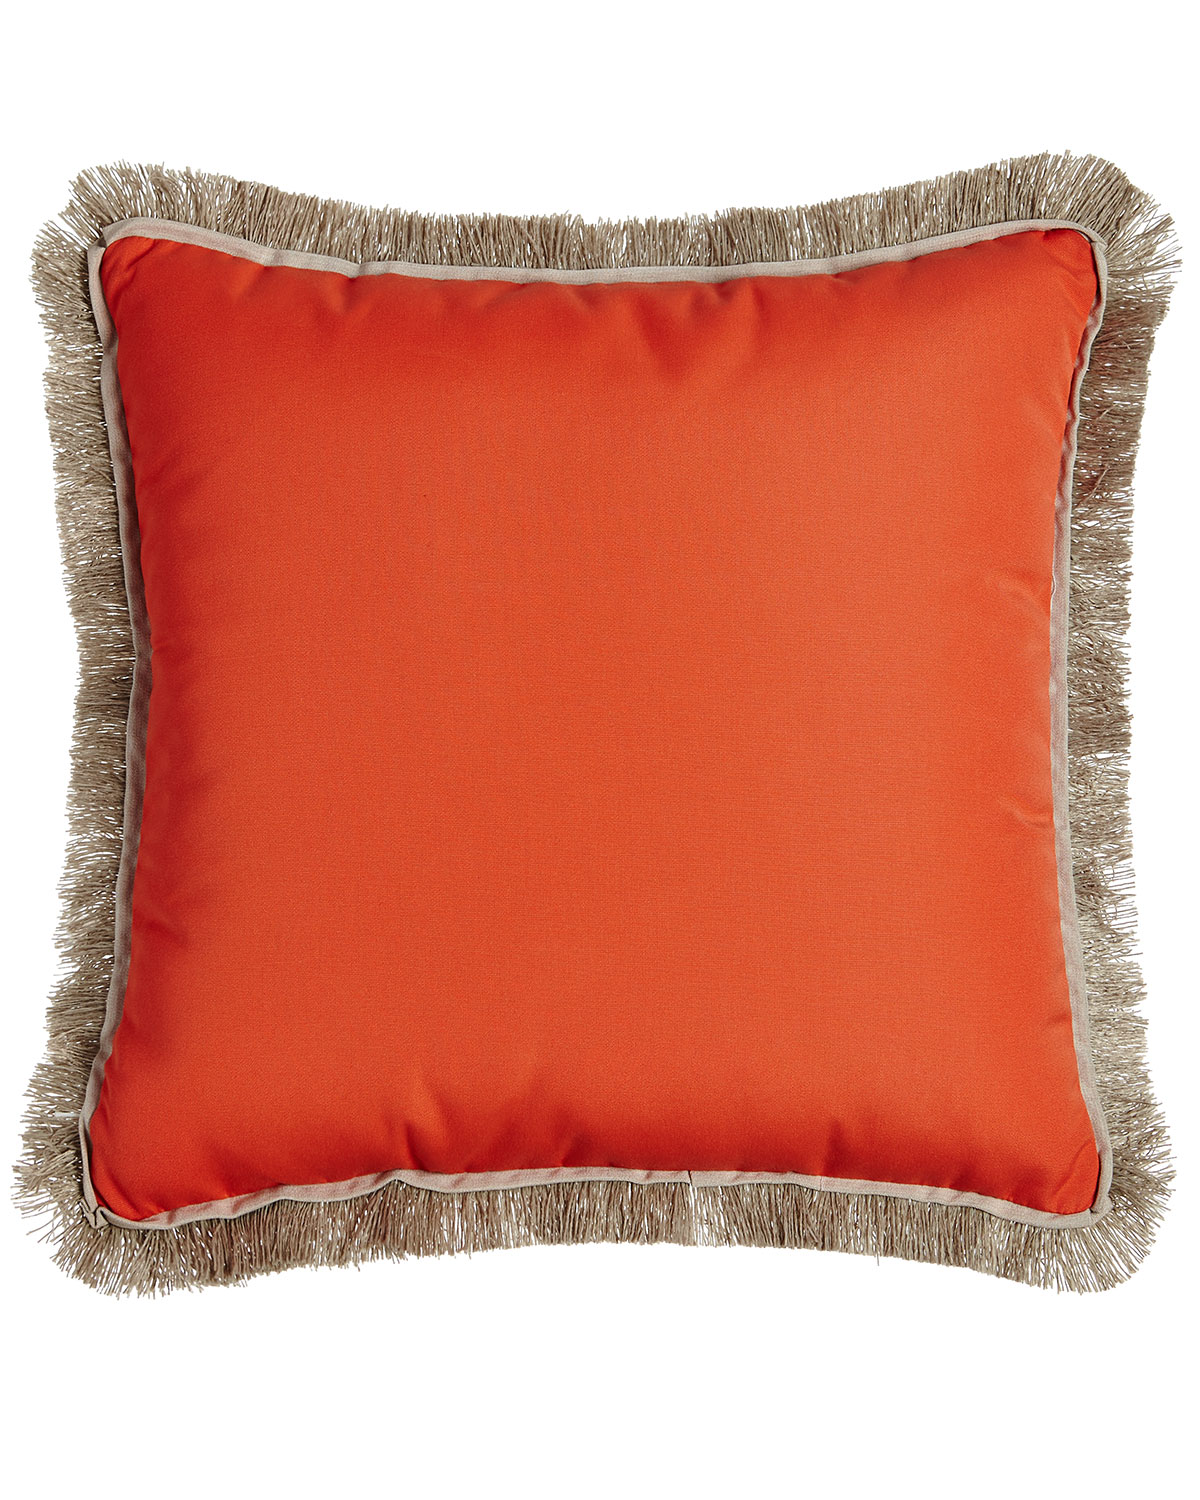 Fringed Coral Outdoor Pillow